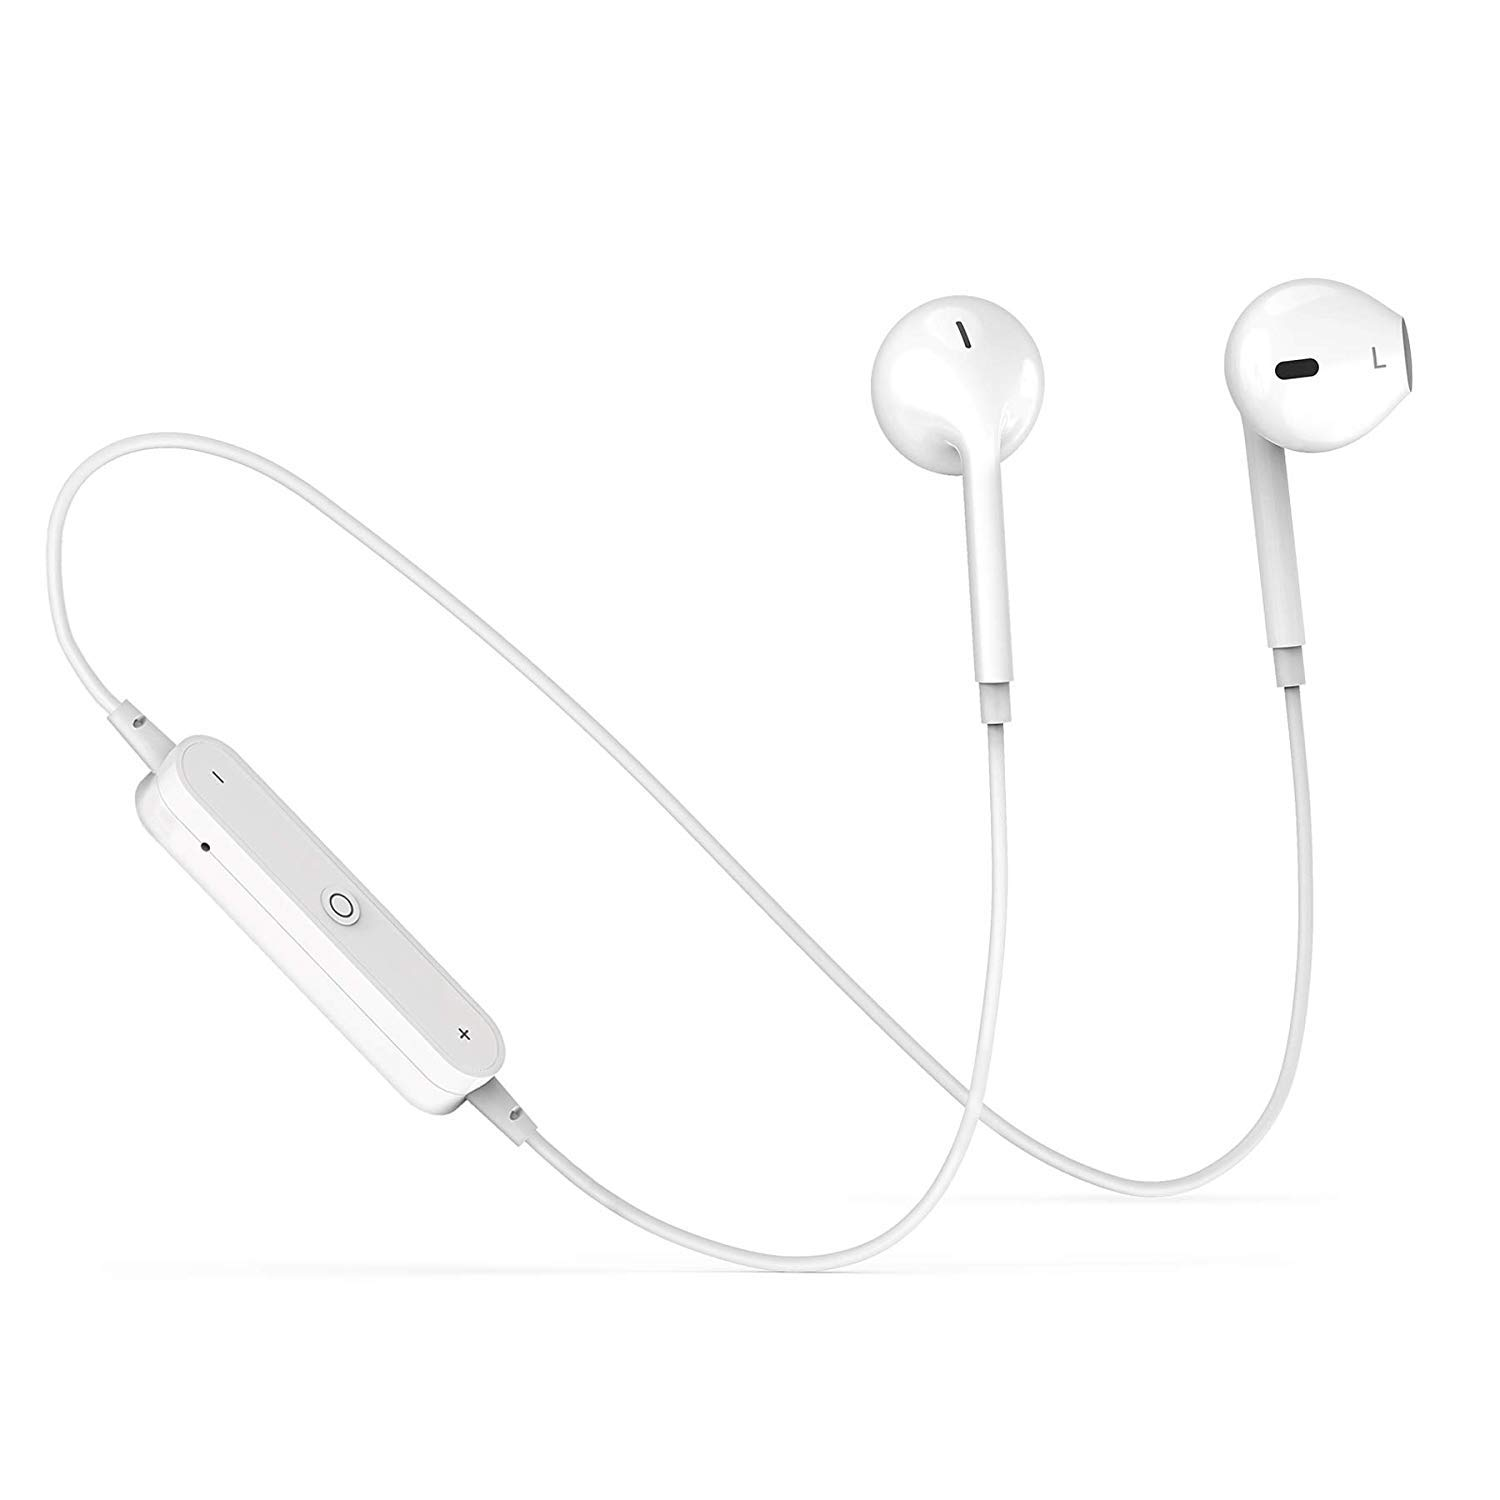 Bluetooth Headphones, in-Ear Wireless Earbuds, 4.2 Waterproof Sports Bluetooth Earphones with Mic Noise Cancelling Stereo Wireless Bluetooth Headphones for Gym Running Workout TTB001